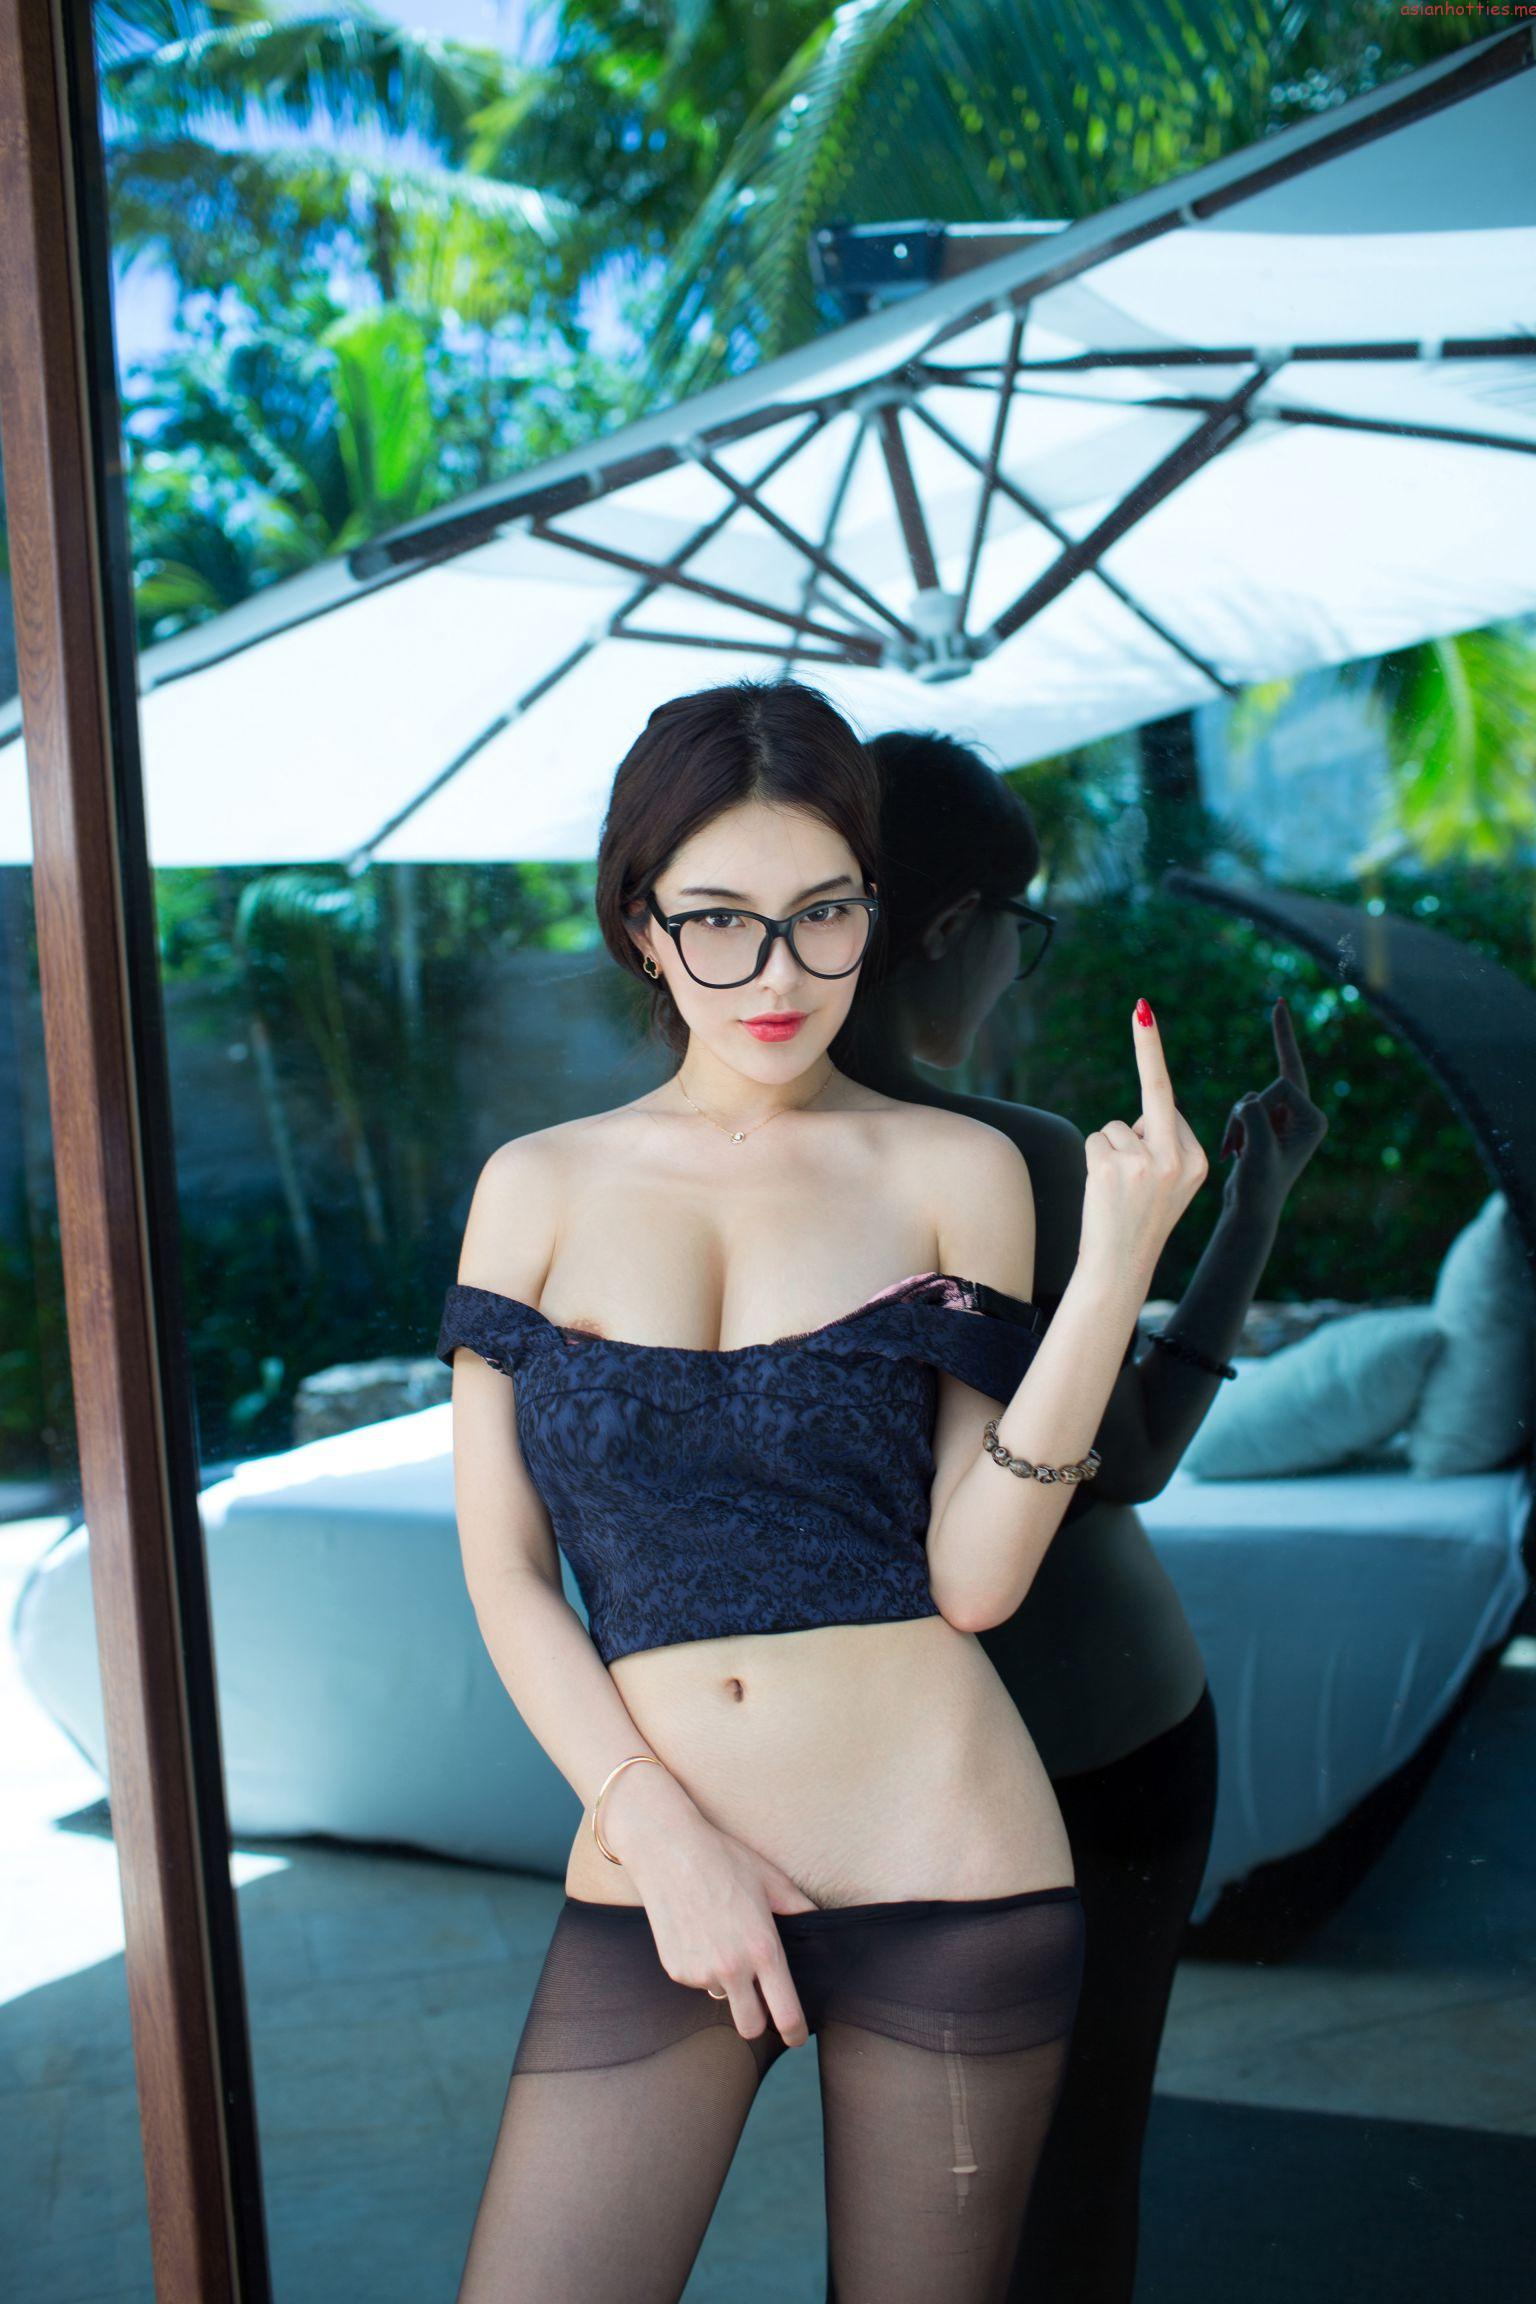 4K Porno China chinese porn models | sex pictures pass